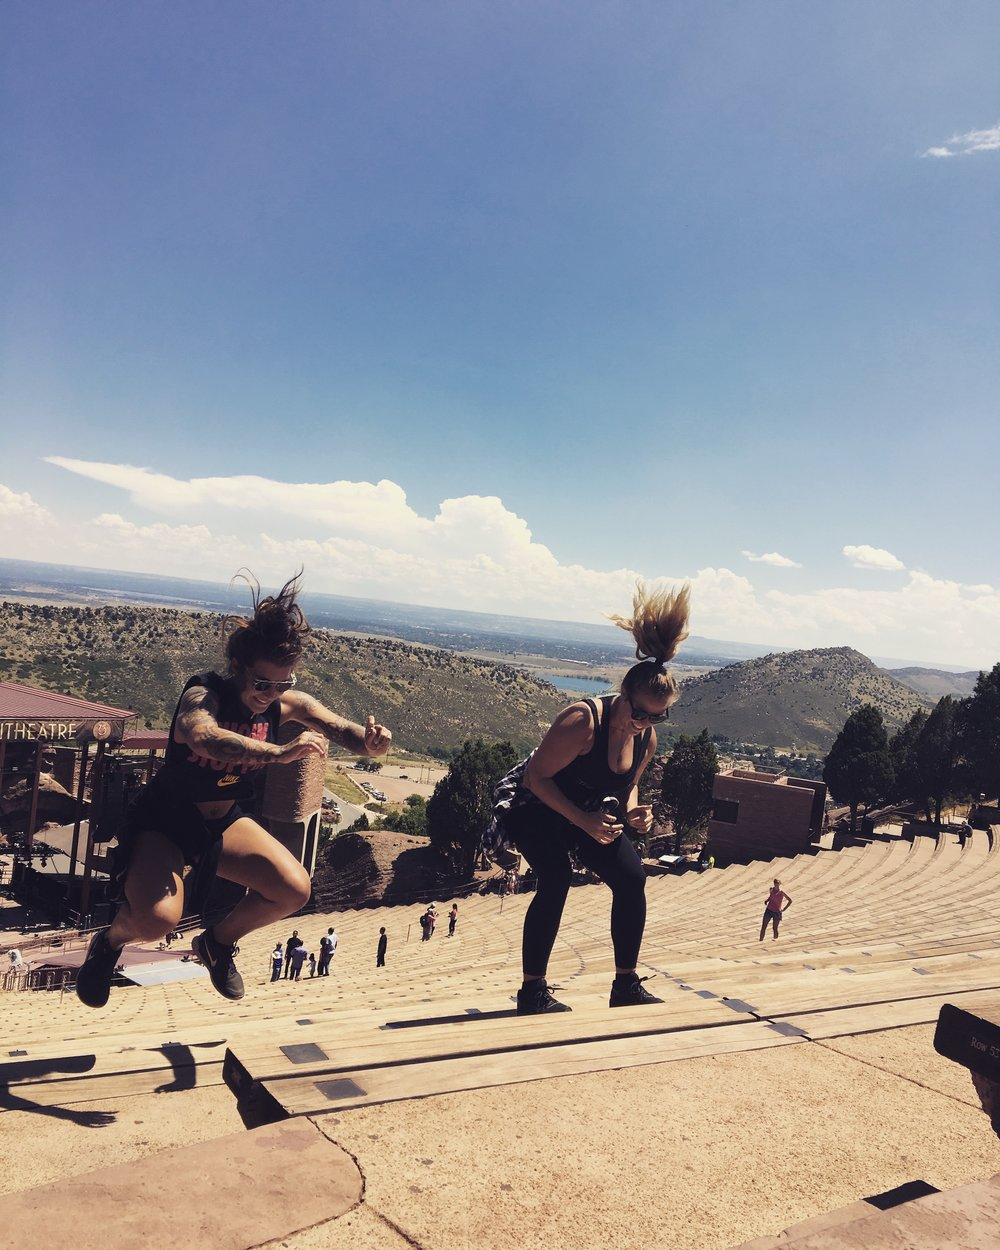 Shayna and I did stadiums & squat jumps at Red Rocks, Colorado. They were SO hard.